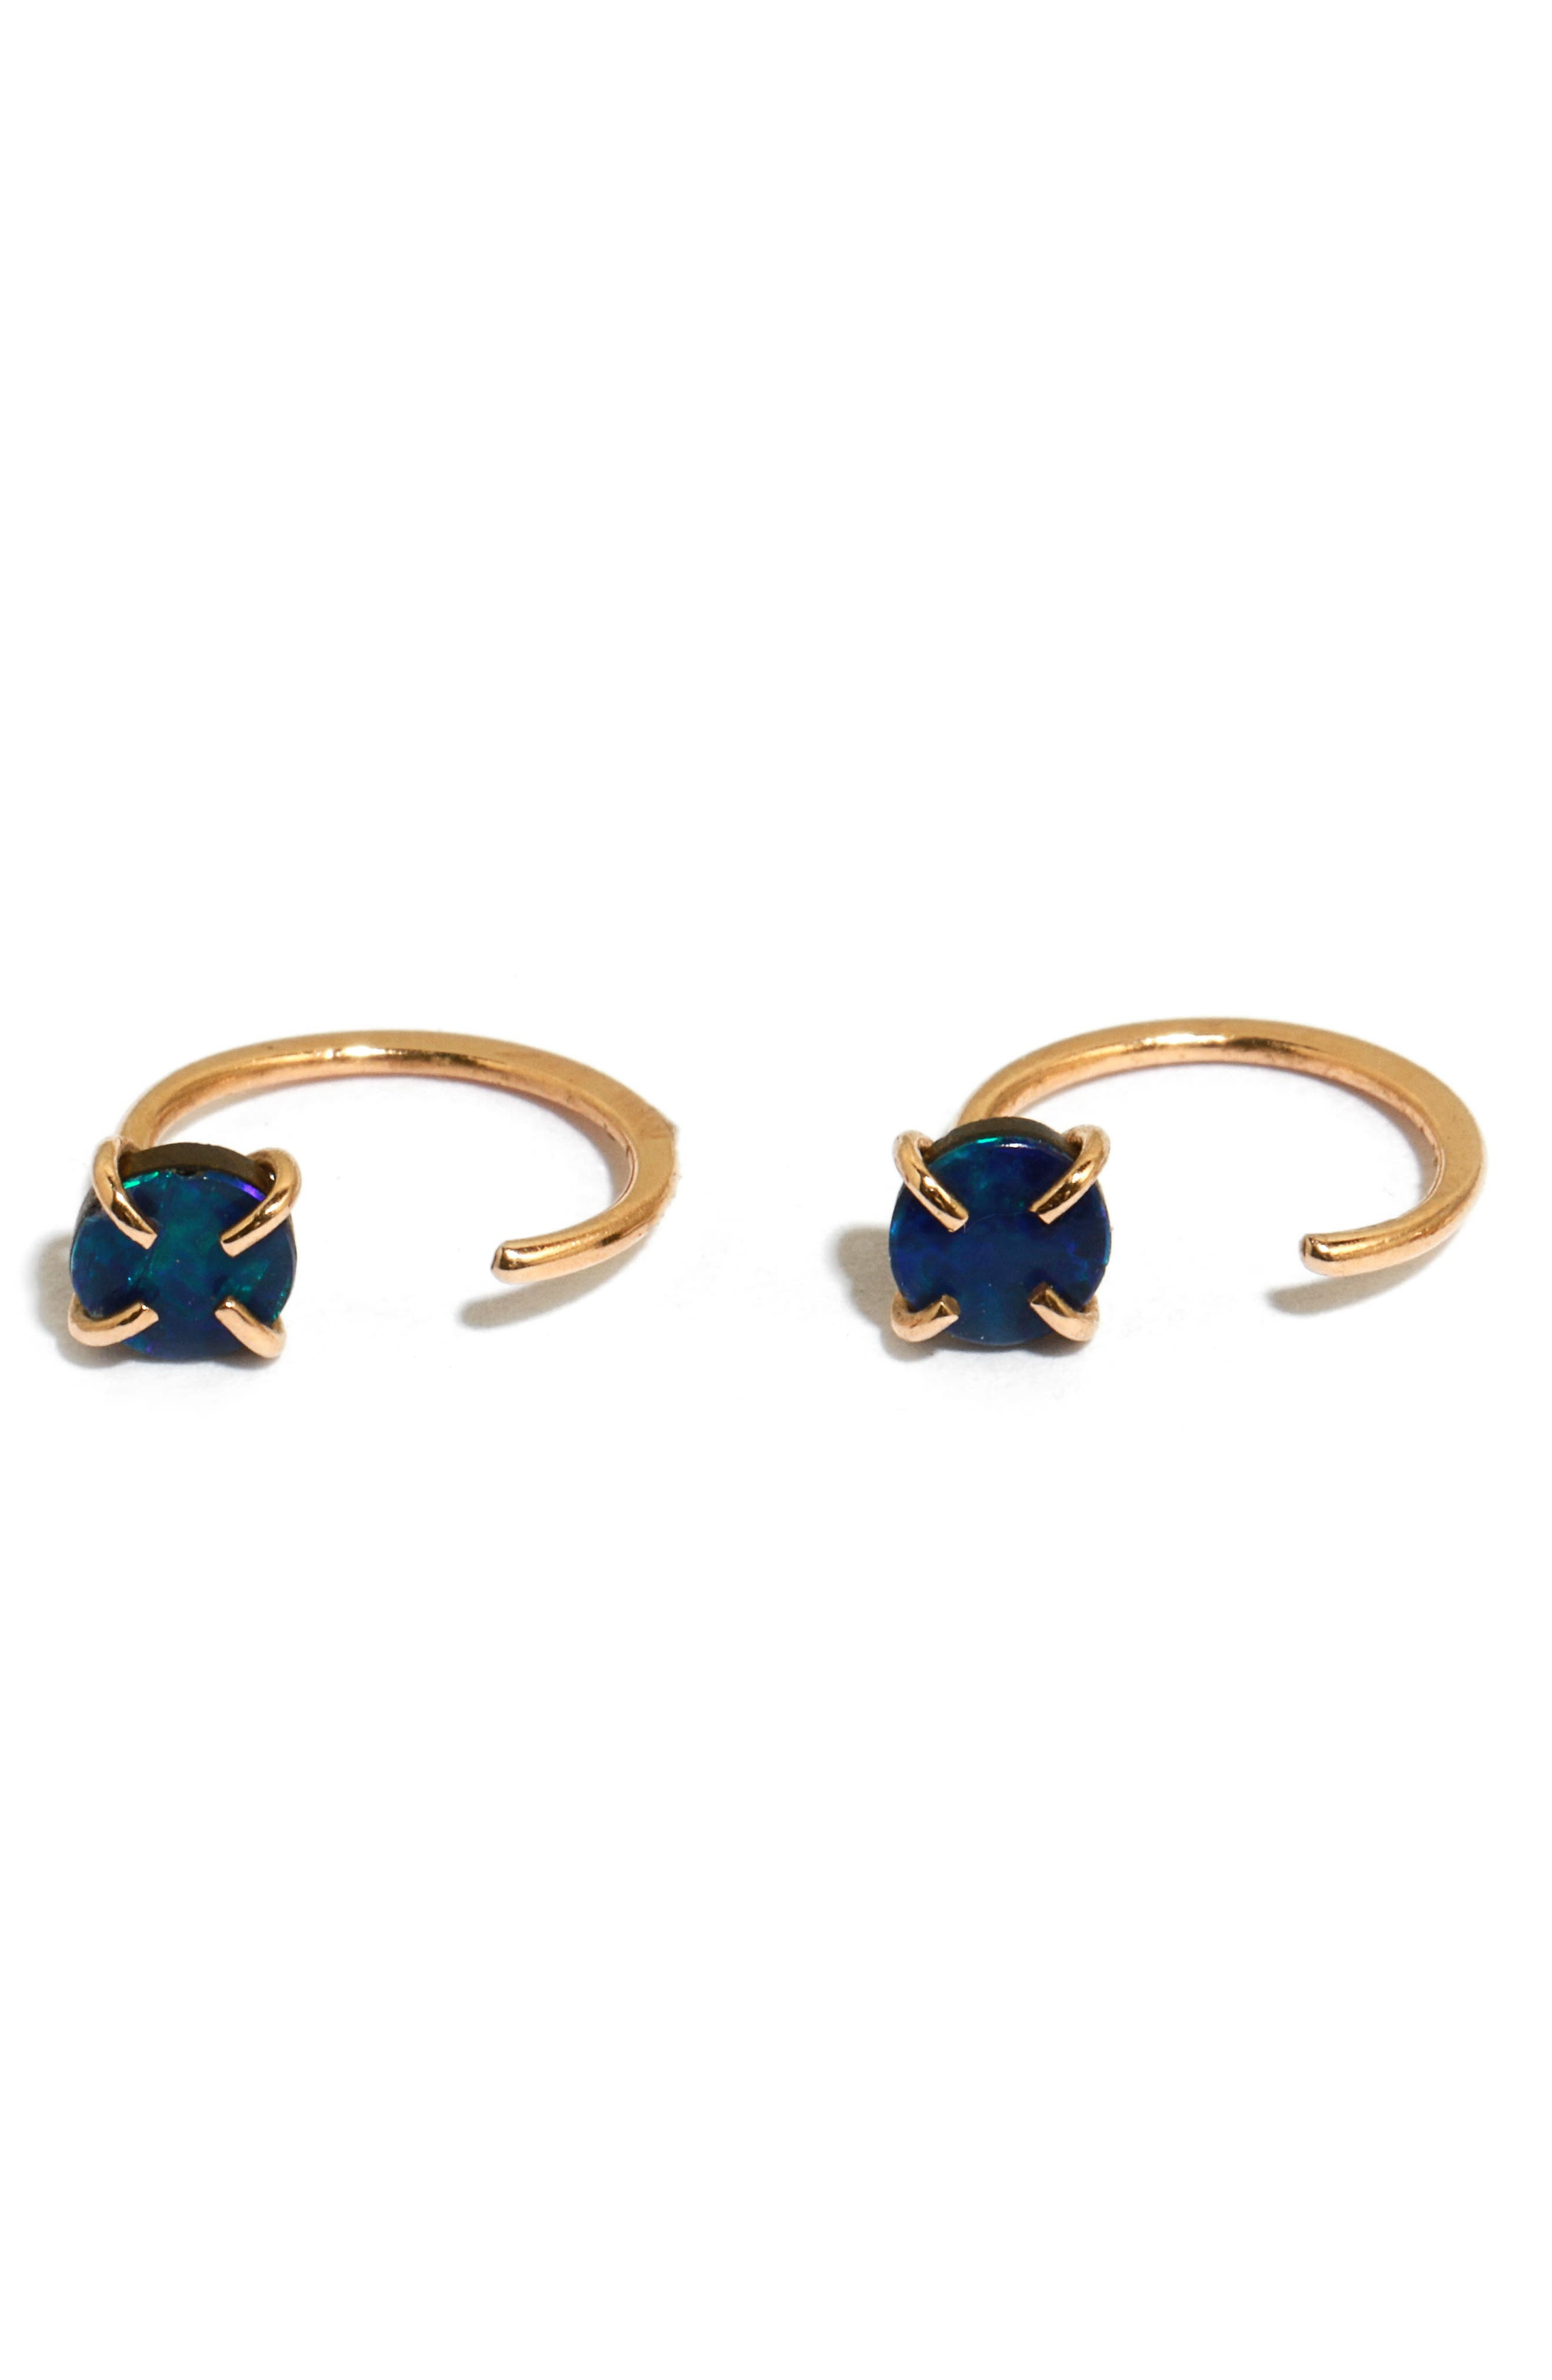 Small Hoop Earrings,                         Main,                         color, Yellow Gold